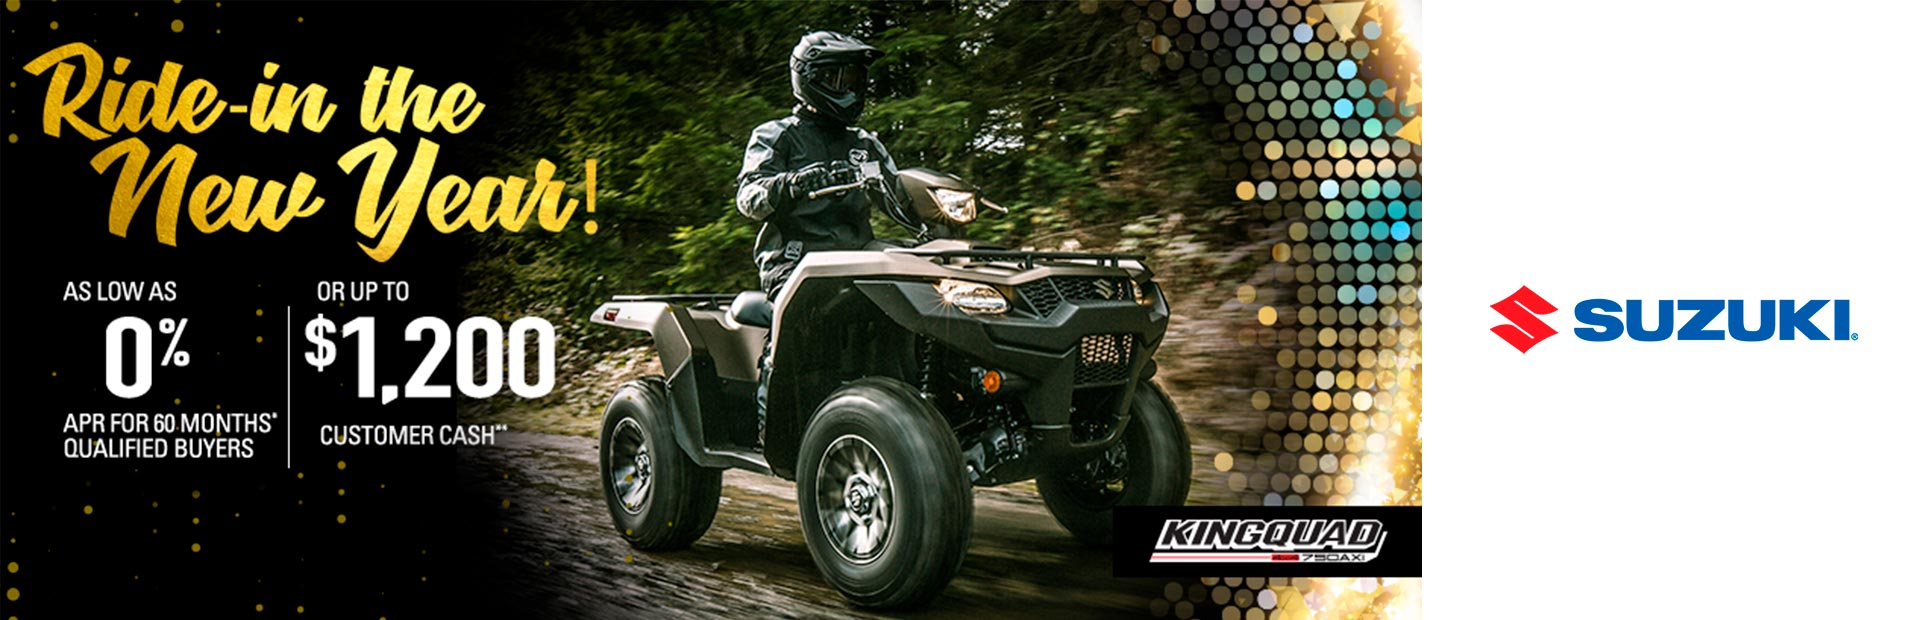 Ride-In The New Year! - ATVs